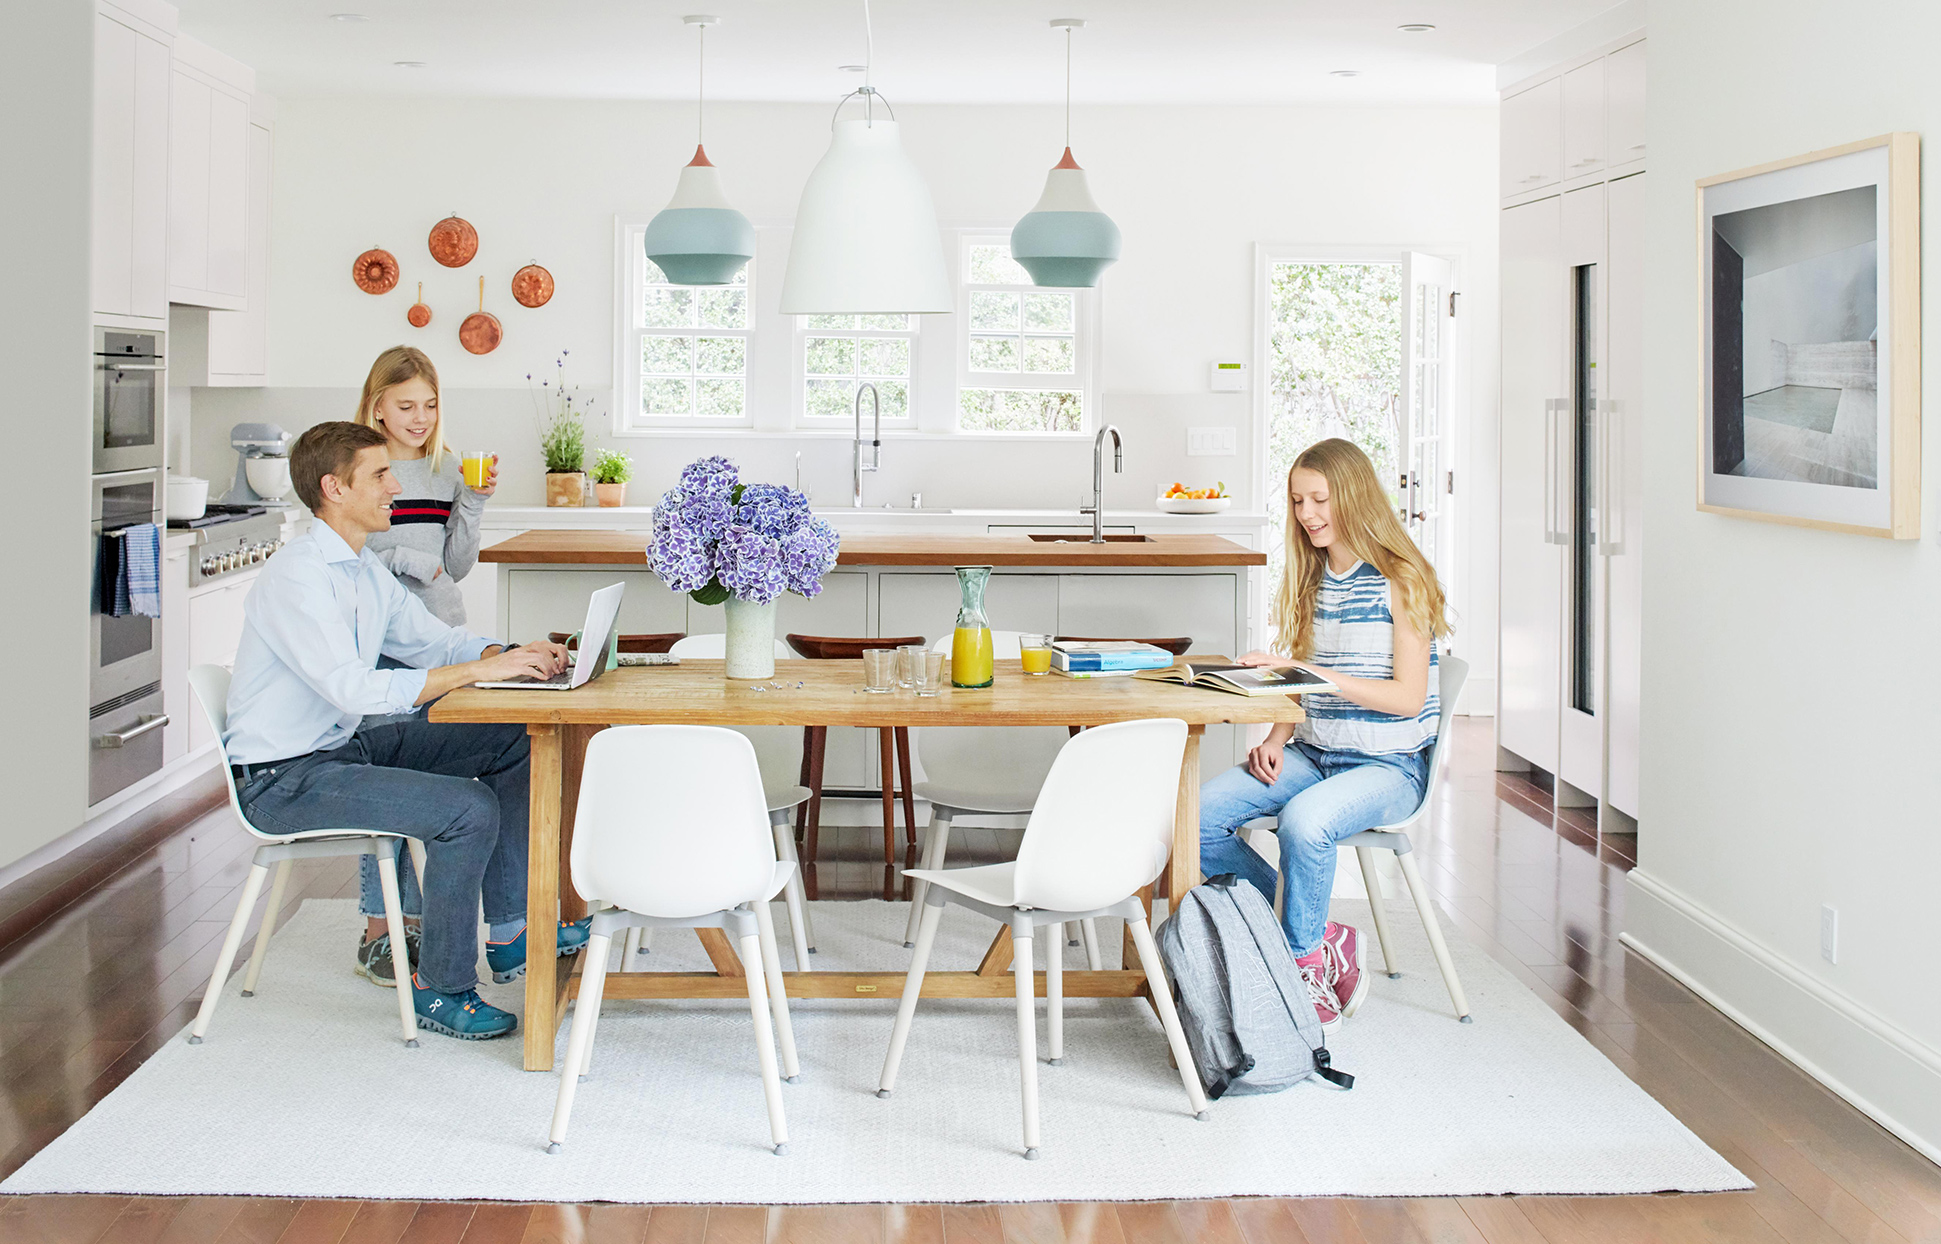 Family sitting at wooden dining table